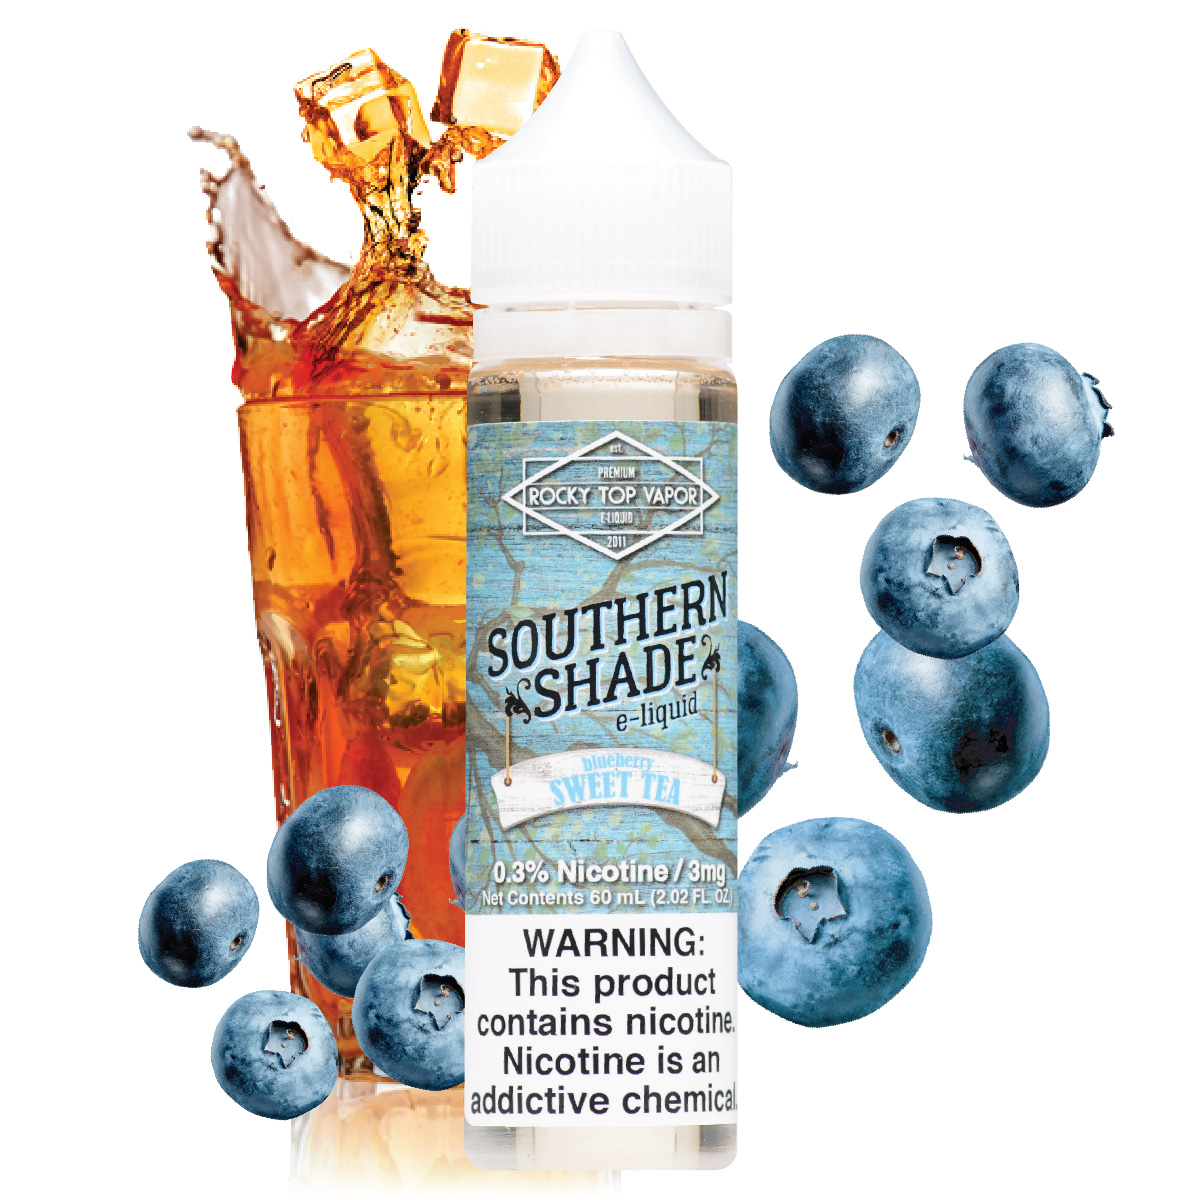 Southern Shade - Blueberry Sweet Tea